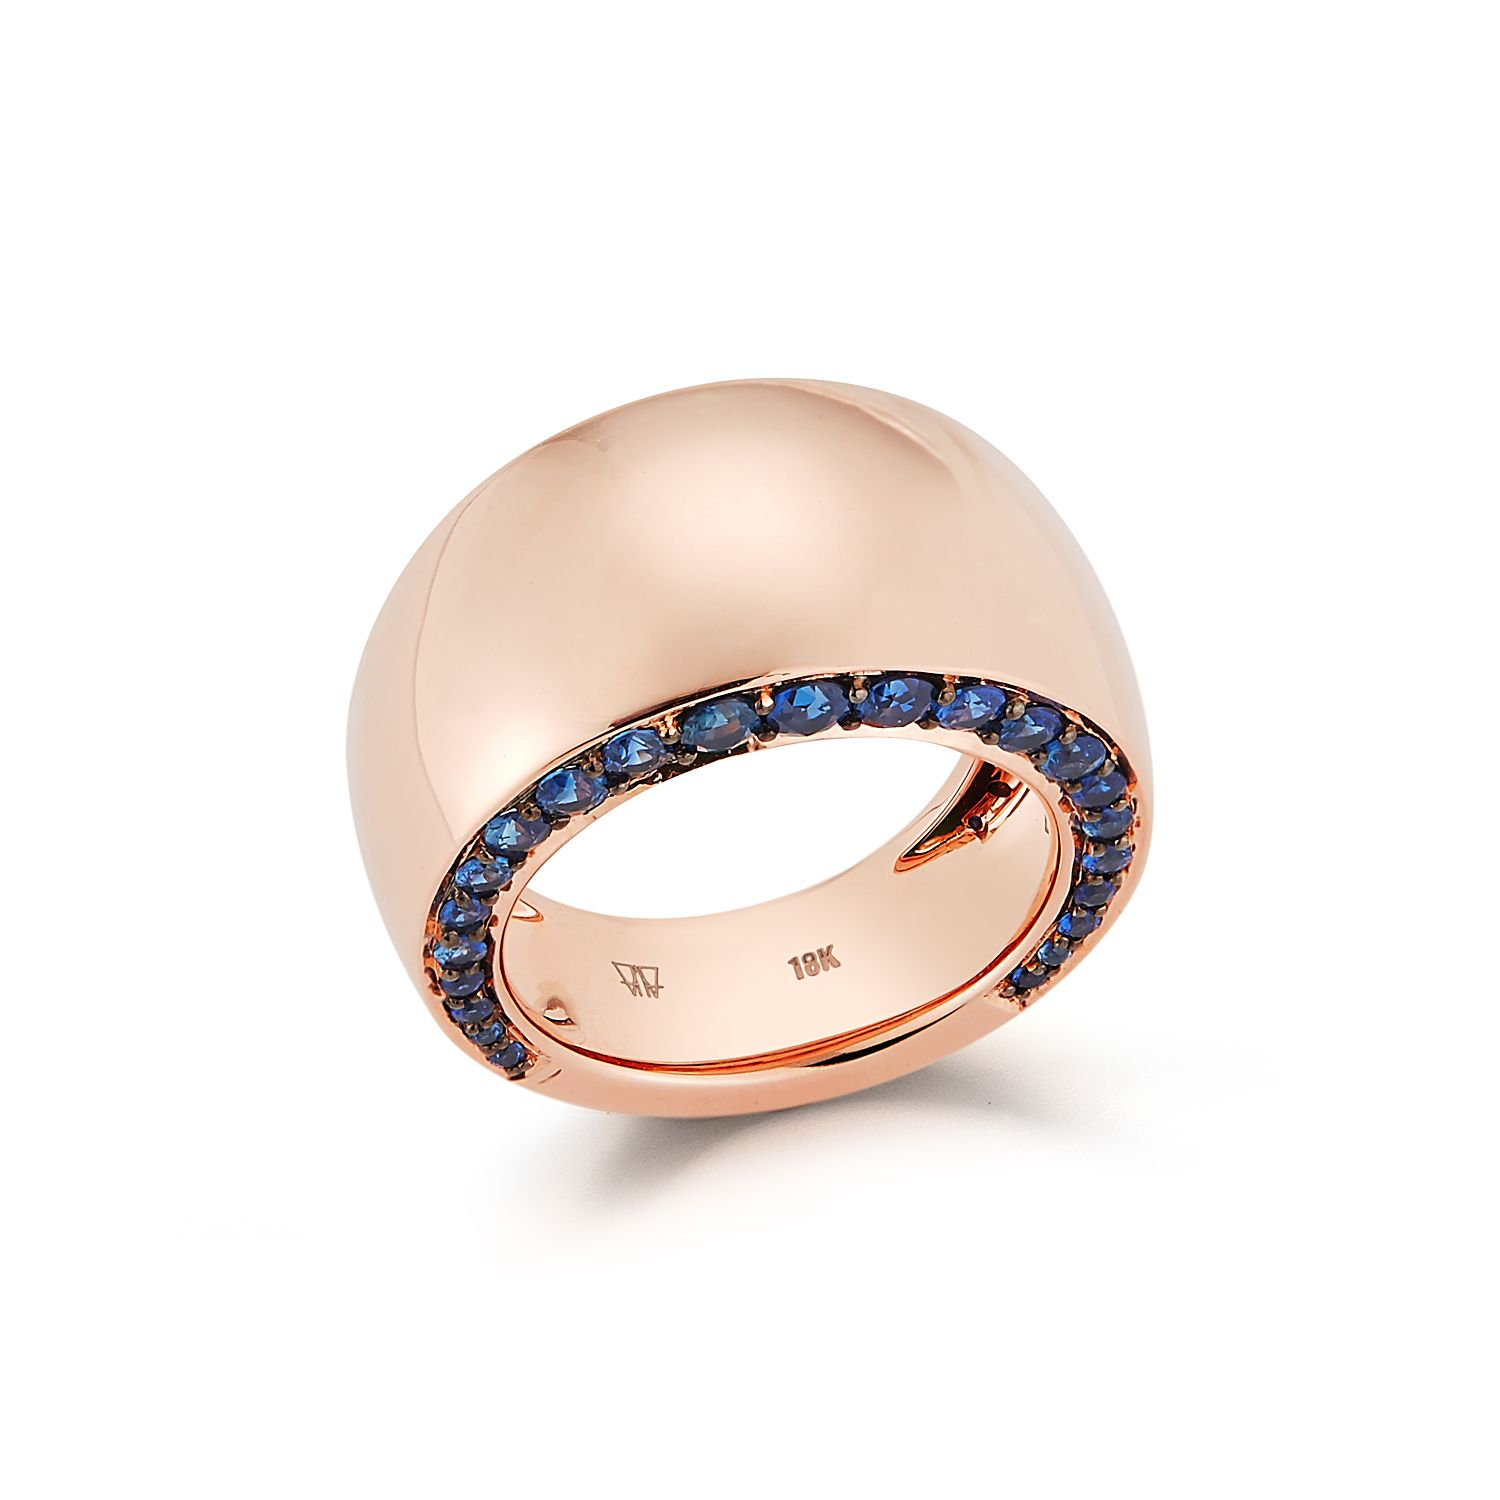 Walters Faith Lytton 18K Rose Gold And Pave Blue Sapphire Wide Ring vWz5aFGM